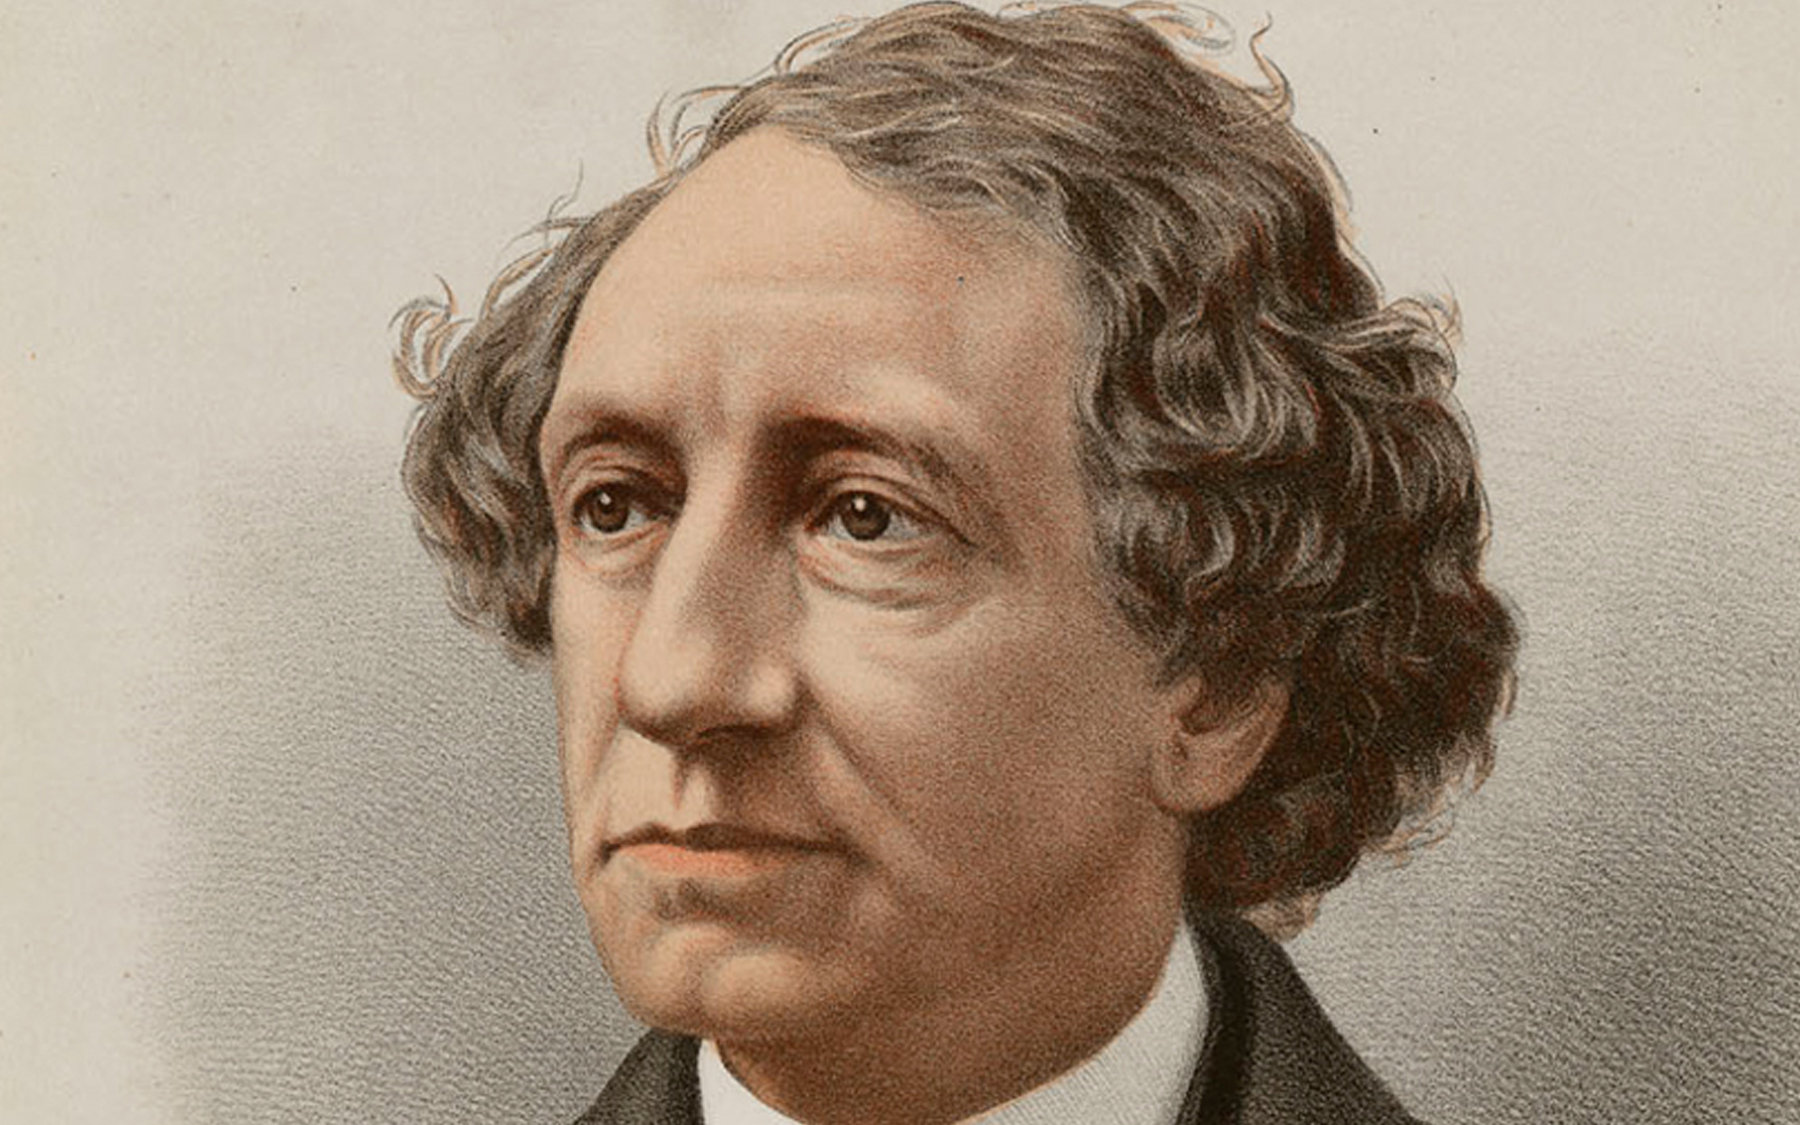 sir john a macdonald When canada's first prime minister died in office in 1891, thousands paid their respects to sir john a macdonald as he lay in state in the capital of the still-fledgling nation.